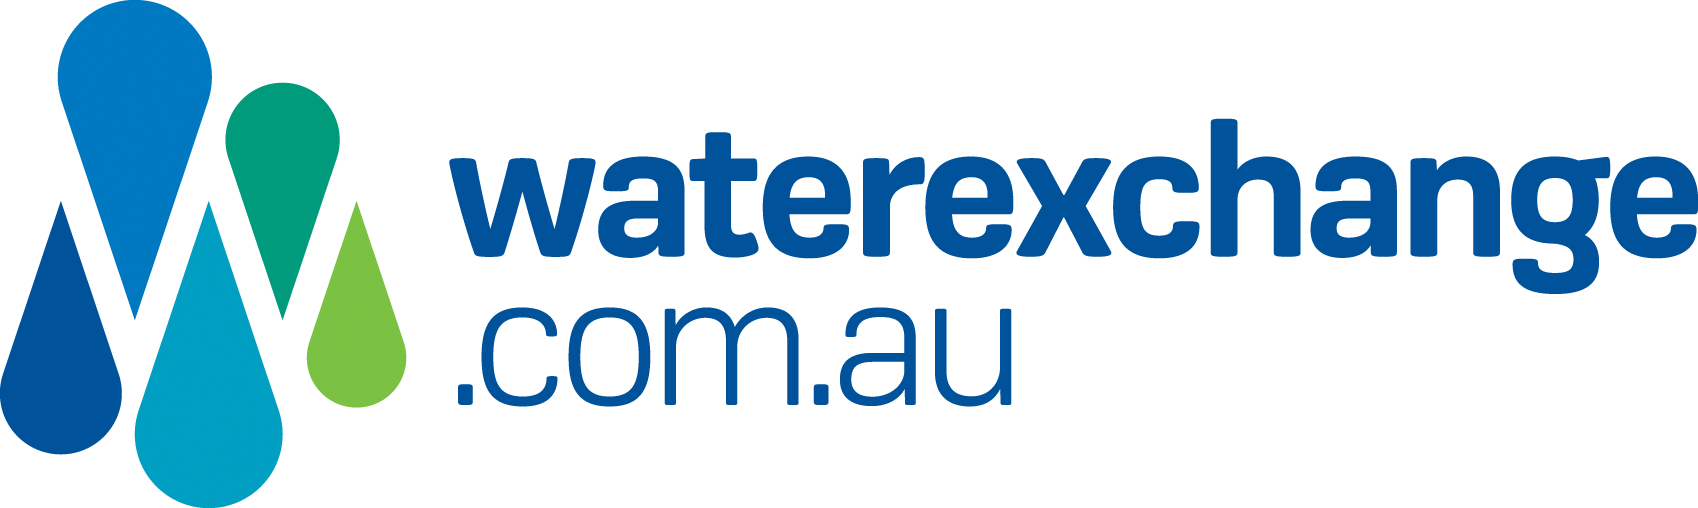 waterexchange